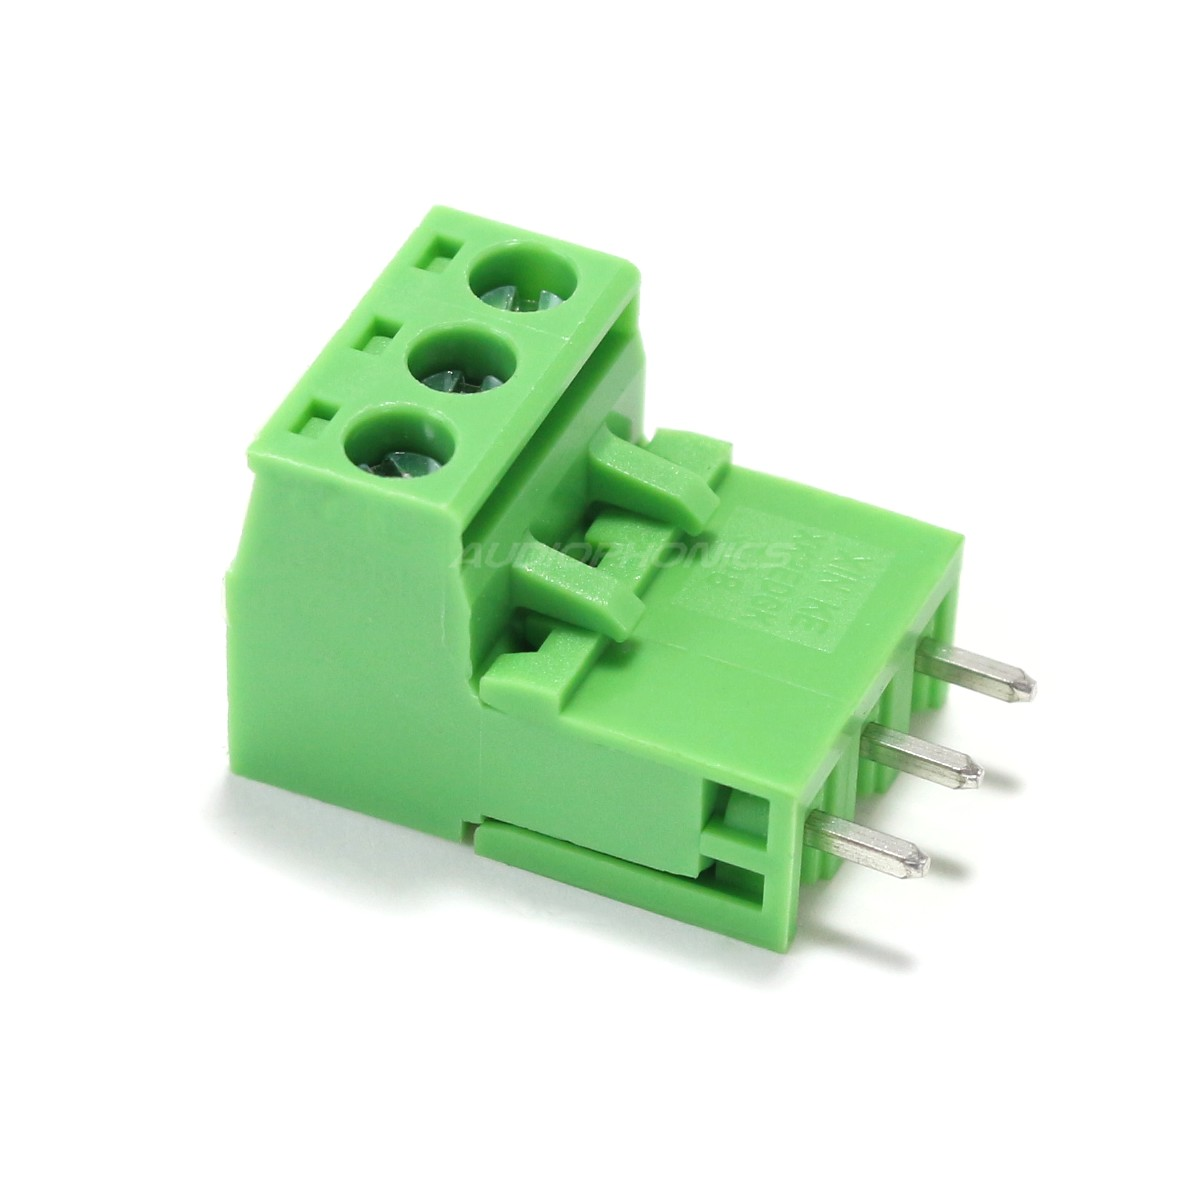 Terminal Block with Screws 3 Ways for PCB Straight-Angled 5.08mm Phoenix